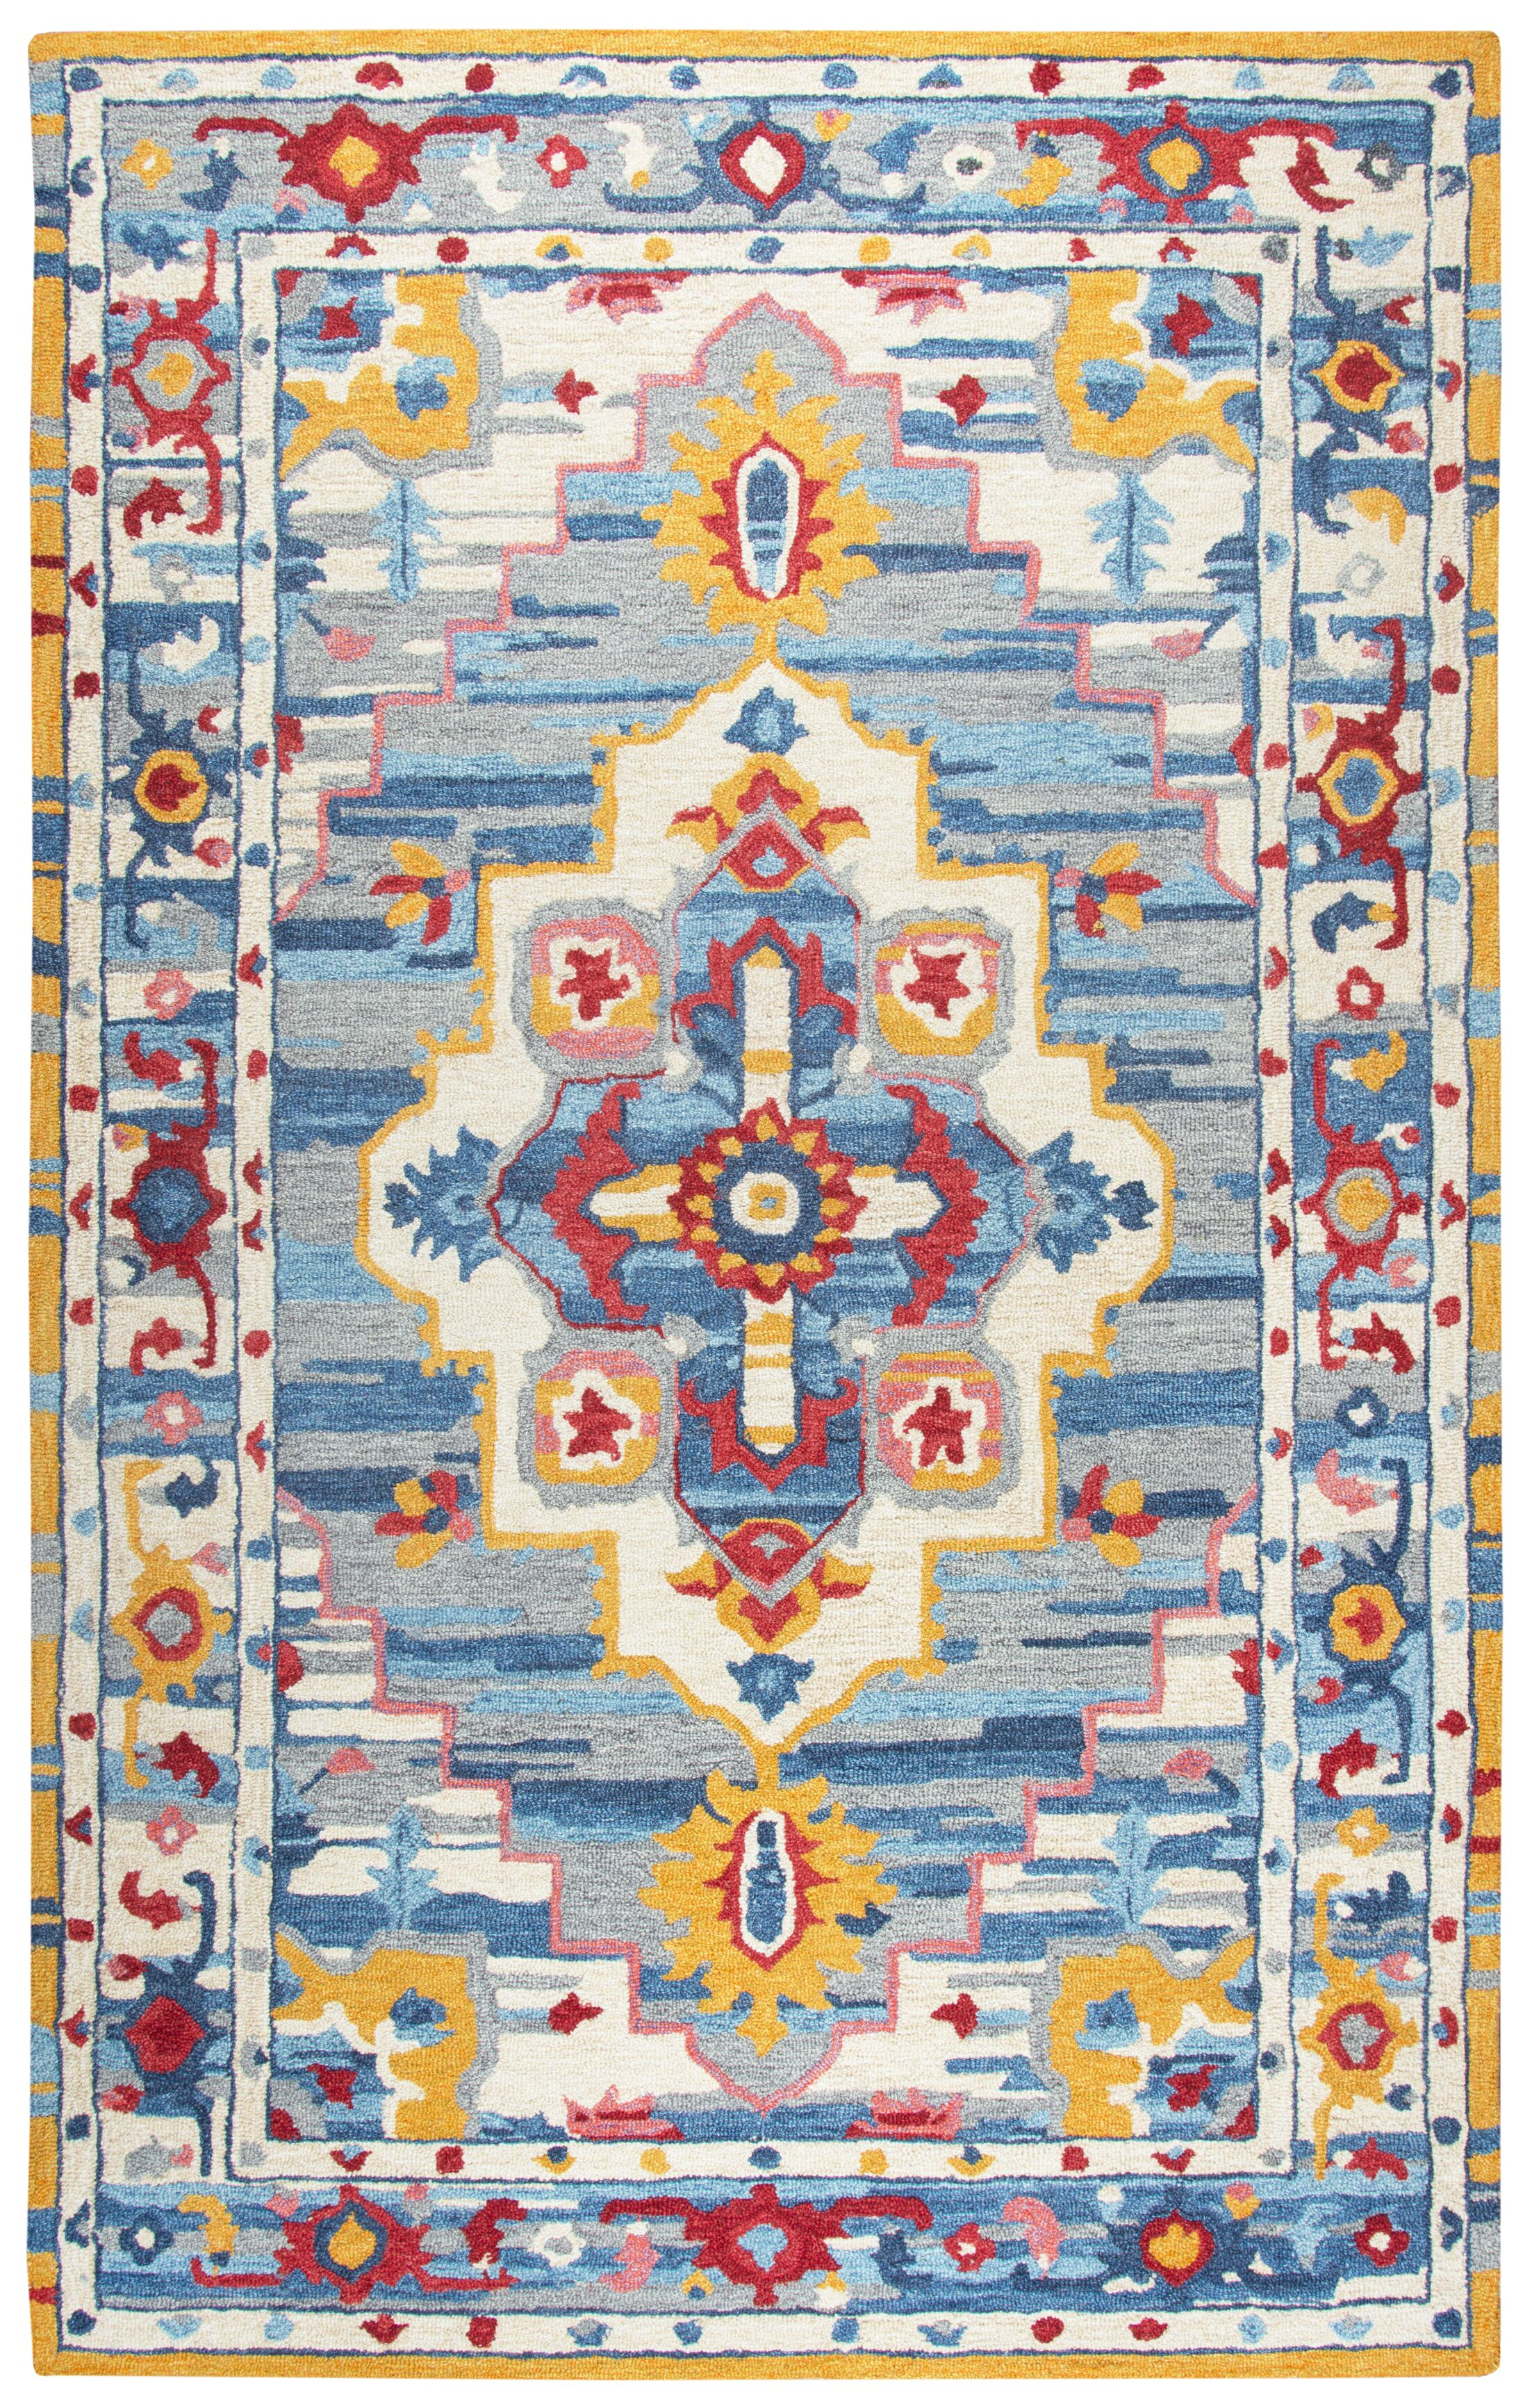 Duron Hand-Tufted Wool Natural/Blue Area Rug Rug Size: Rectangle 2'6